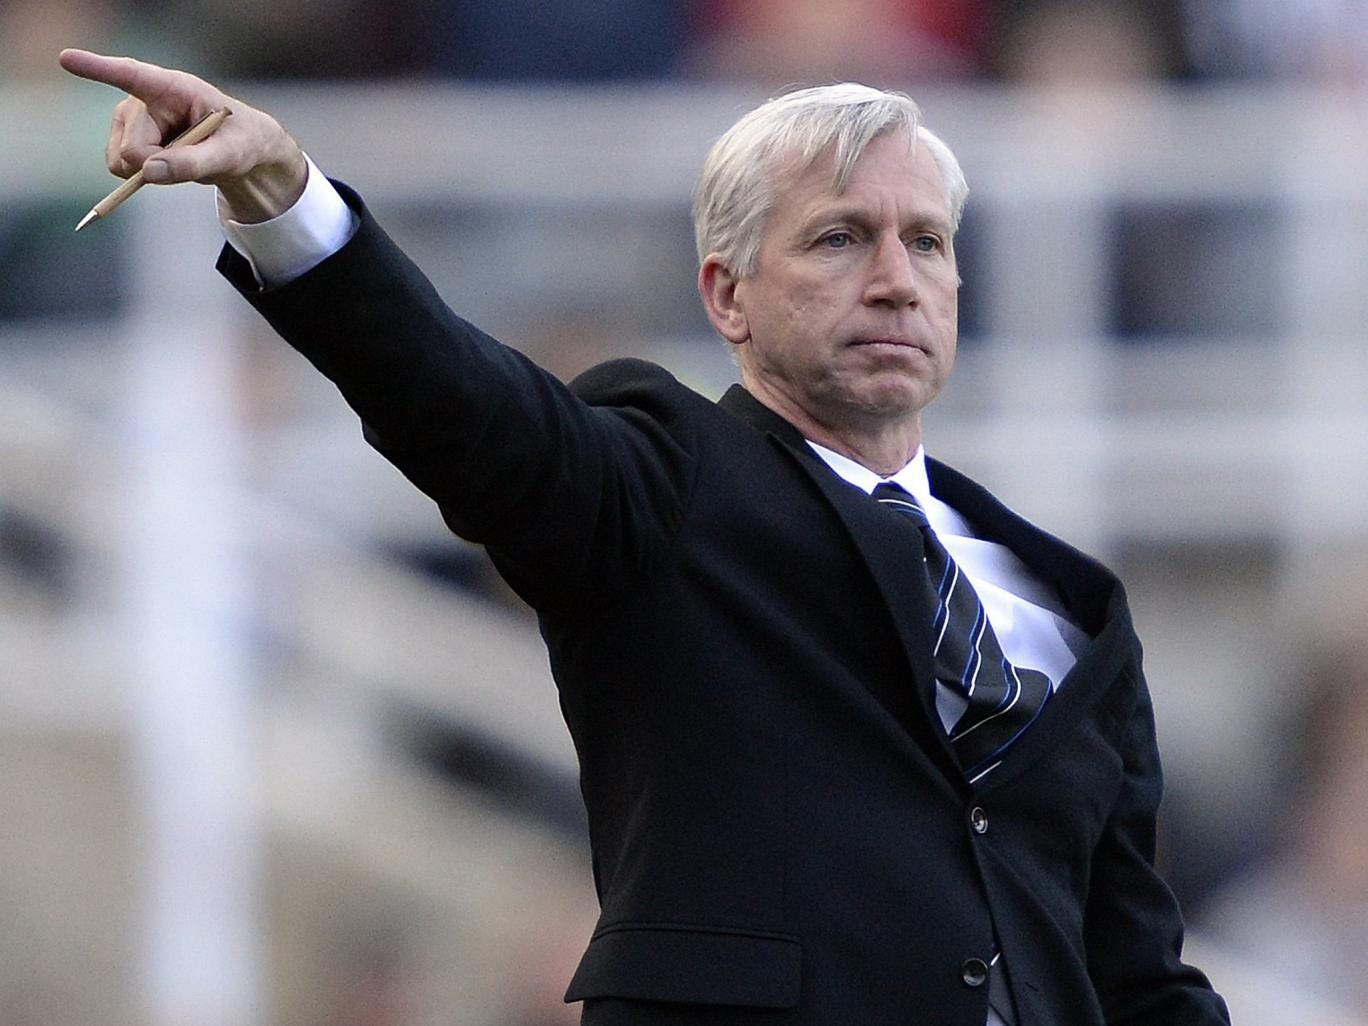 Alan Pardew Signed a new eight-year deal in September, when Newcastle were 10th